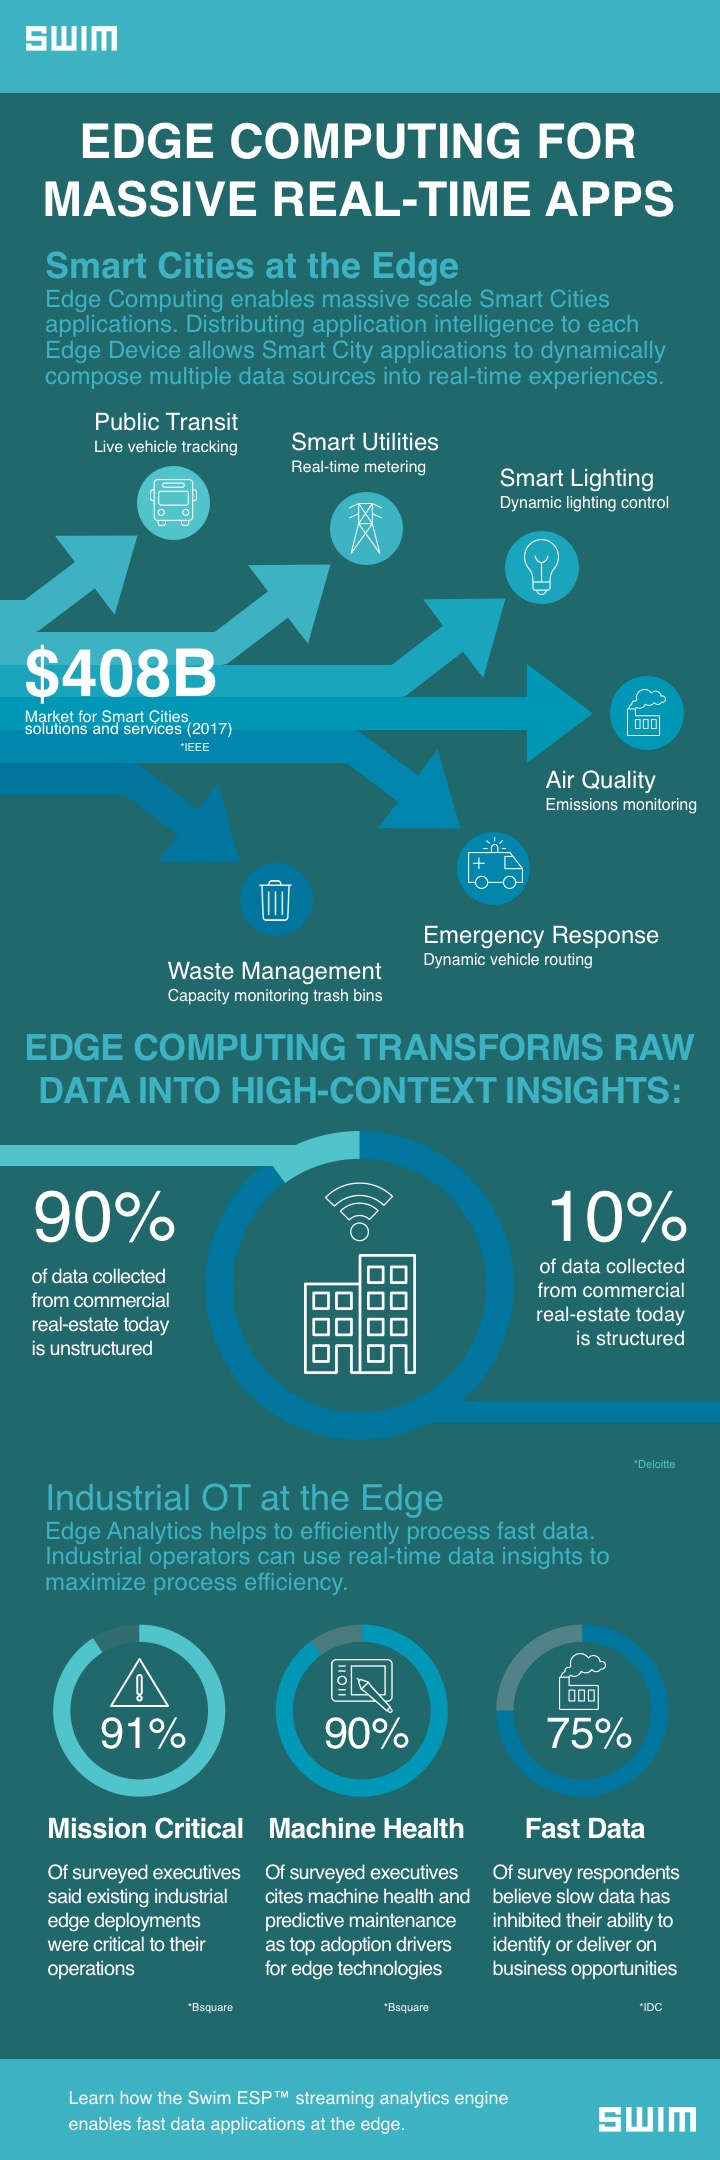 Edge Computing for Massive Real-time Apps - Infographic | Swim Inc.